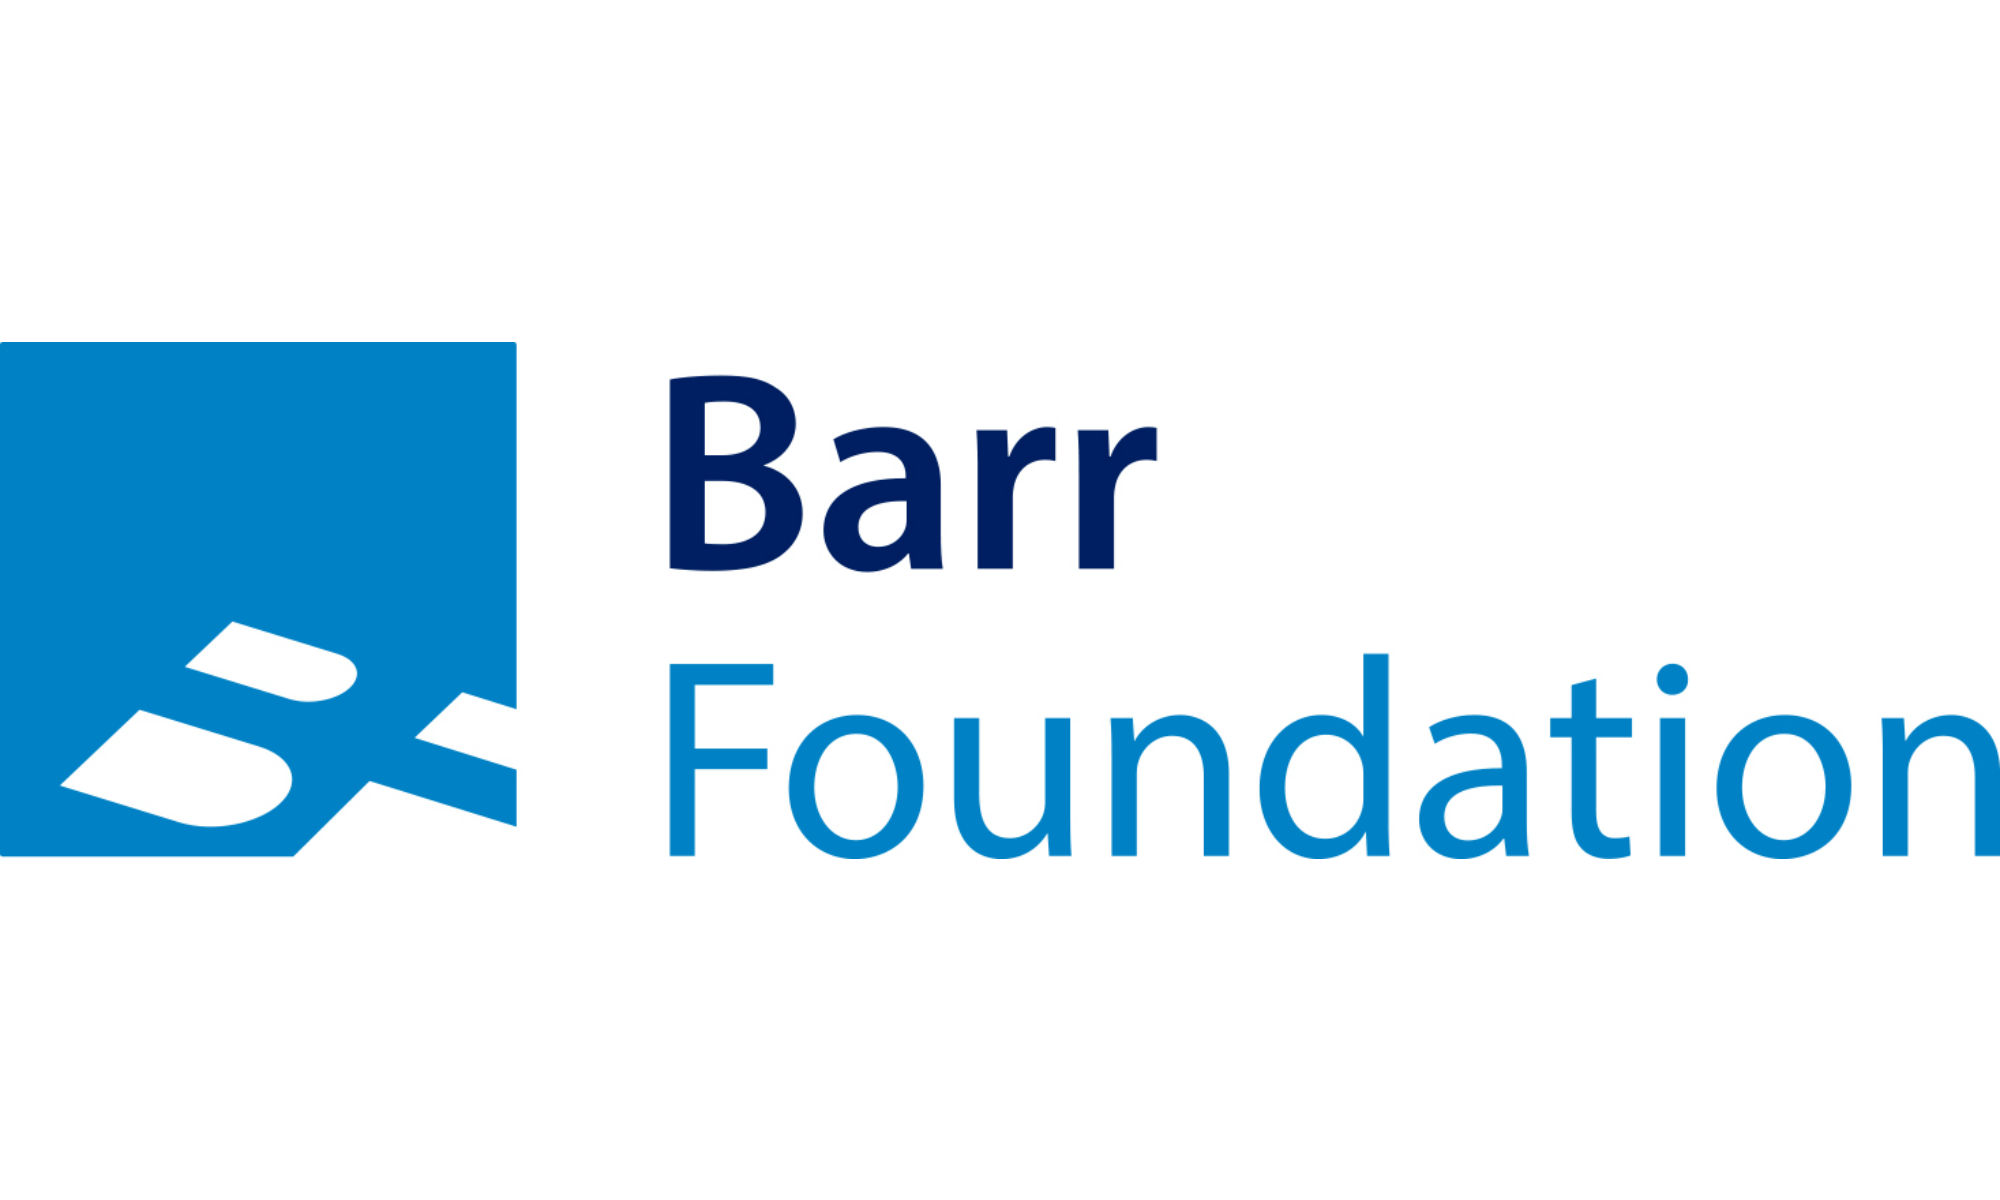 barr-foundation.jpg